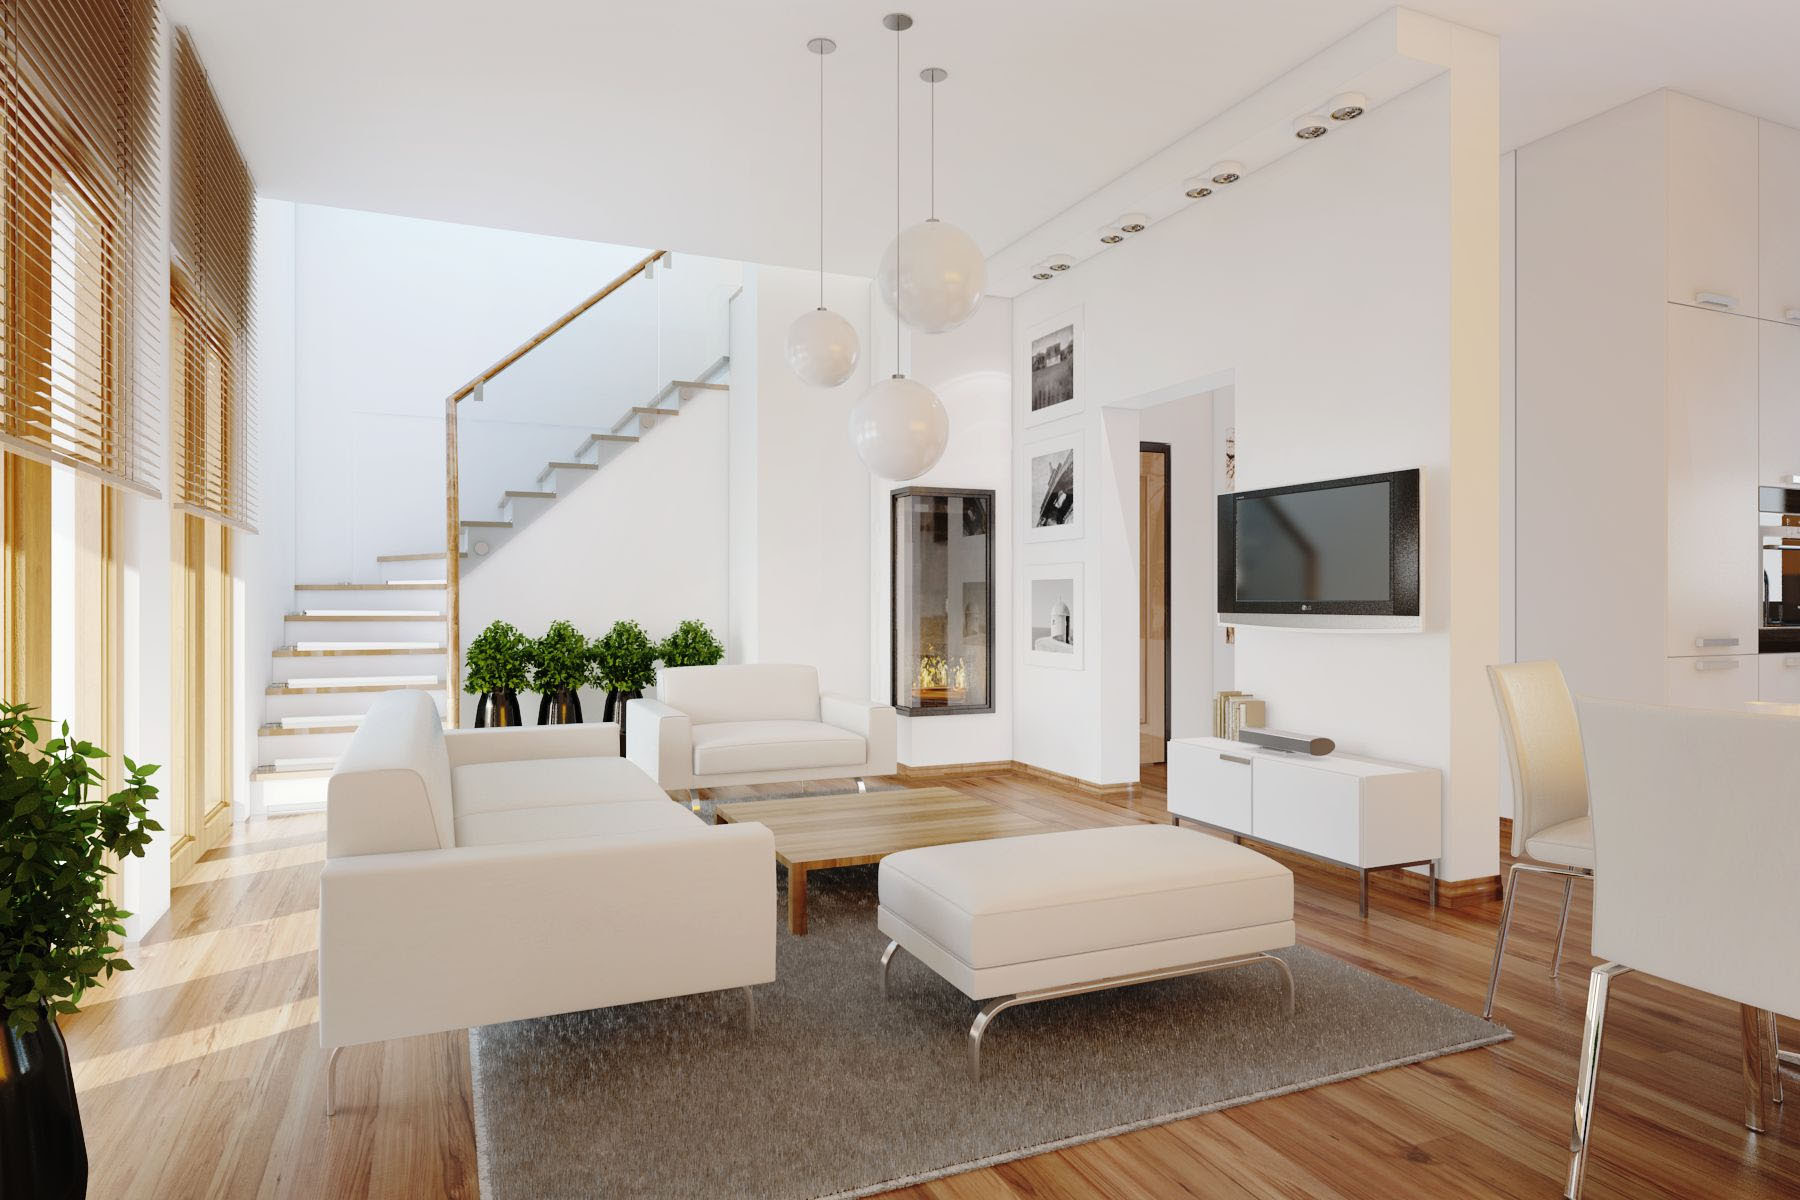 Home Decor: Interior Design Living Room Layout